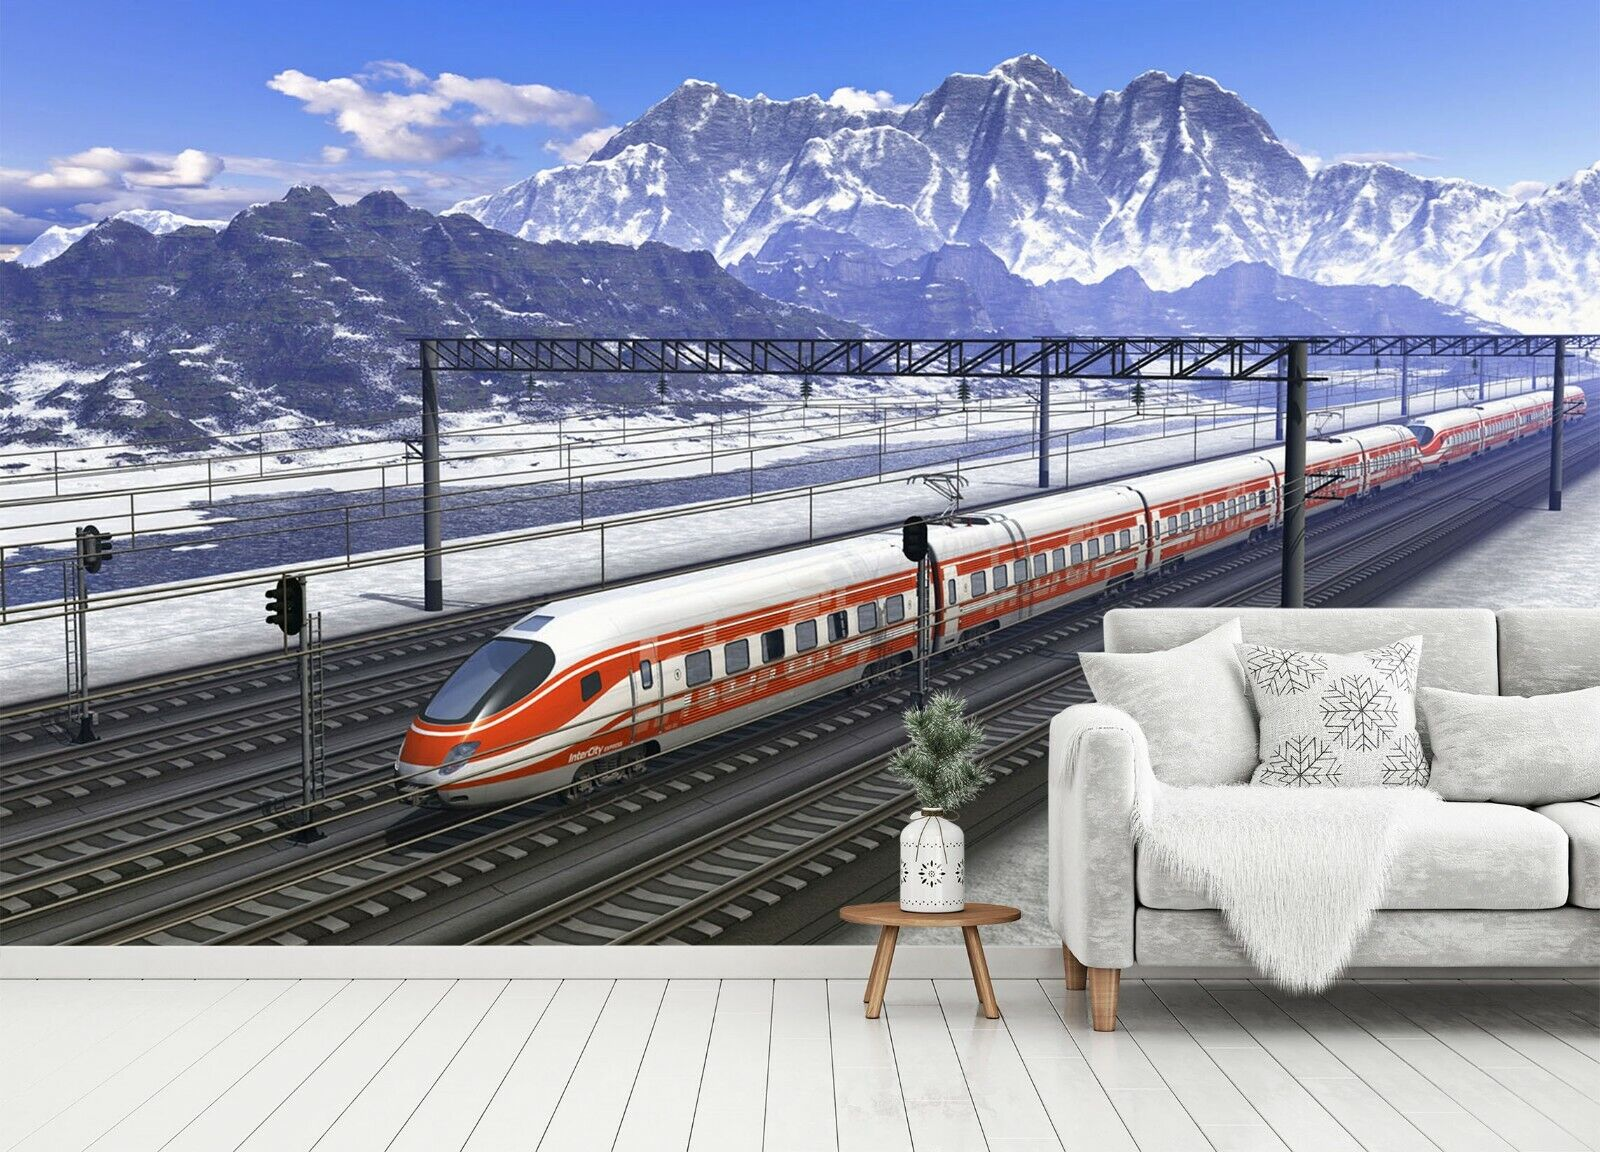 3D Weiß Train I198 Transport WandPapier Mural Sefl-adhesive Removable Angelia